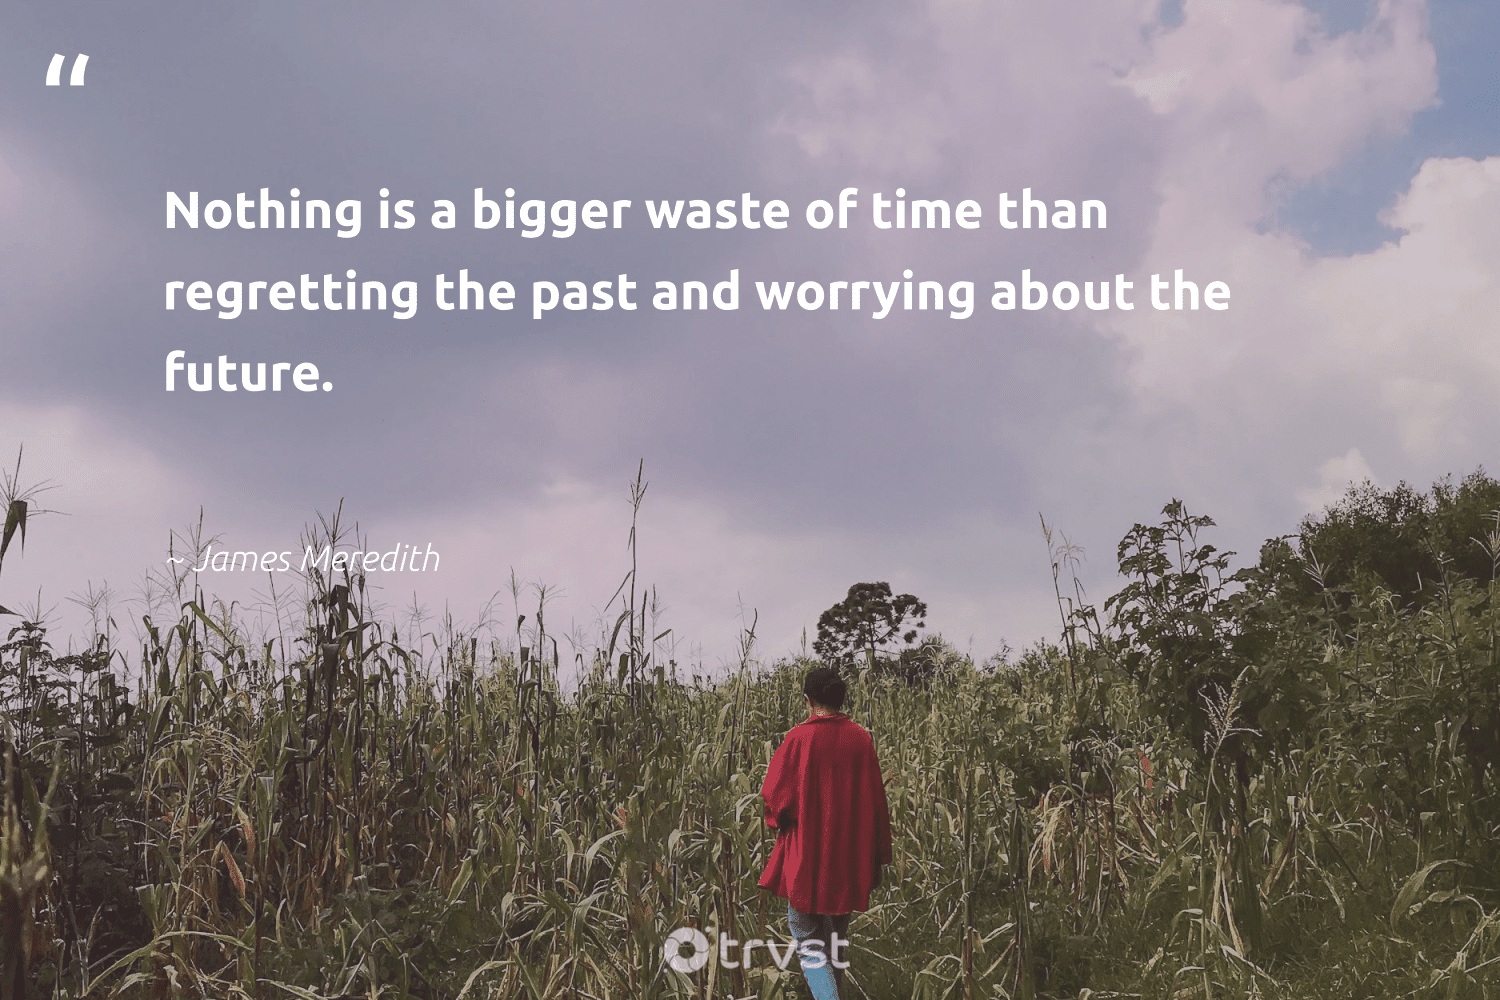 """""""Nothing is a bigger waste of time than regretting the past and worrying about the future.""""  - James Meredith #trvst #quotes #waste #mindset #dogood #changemakers #planetearthfirst #nevergiveup #thinkgreen #health #collectiveaction #begreat"""